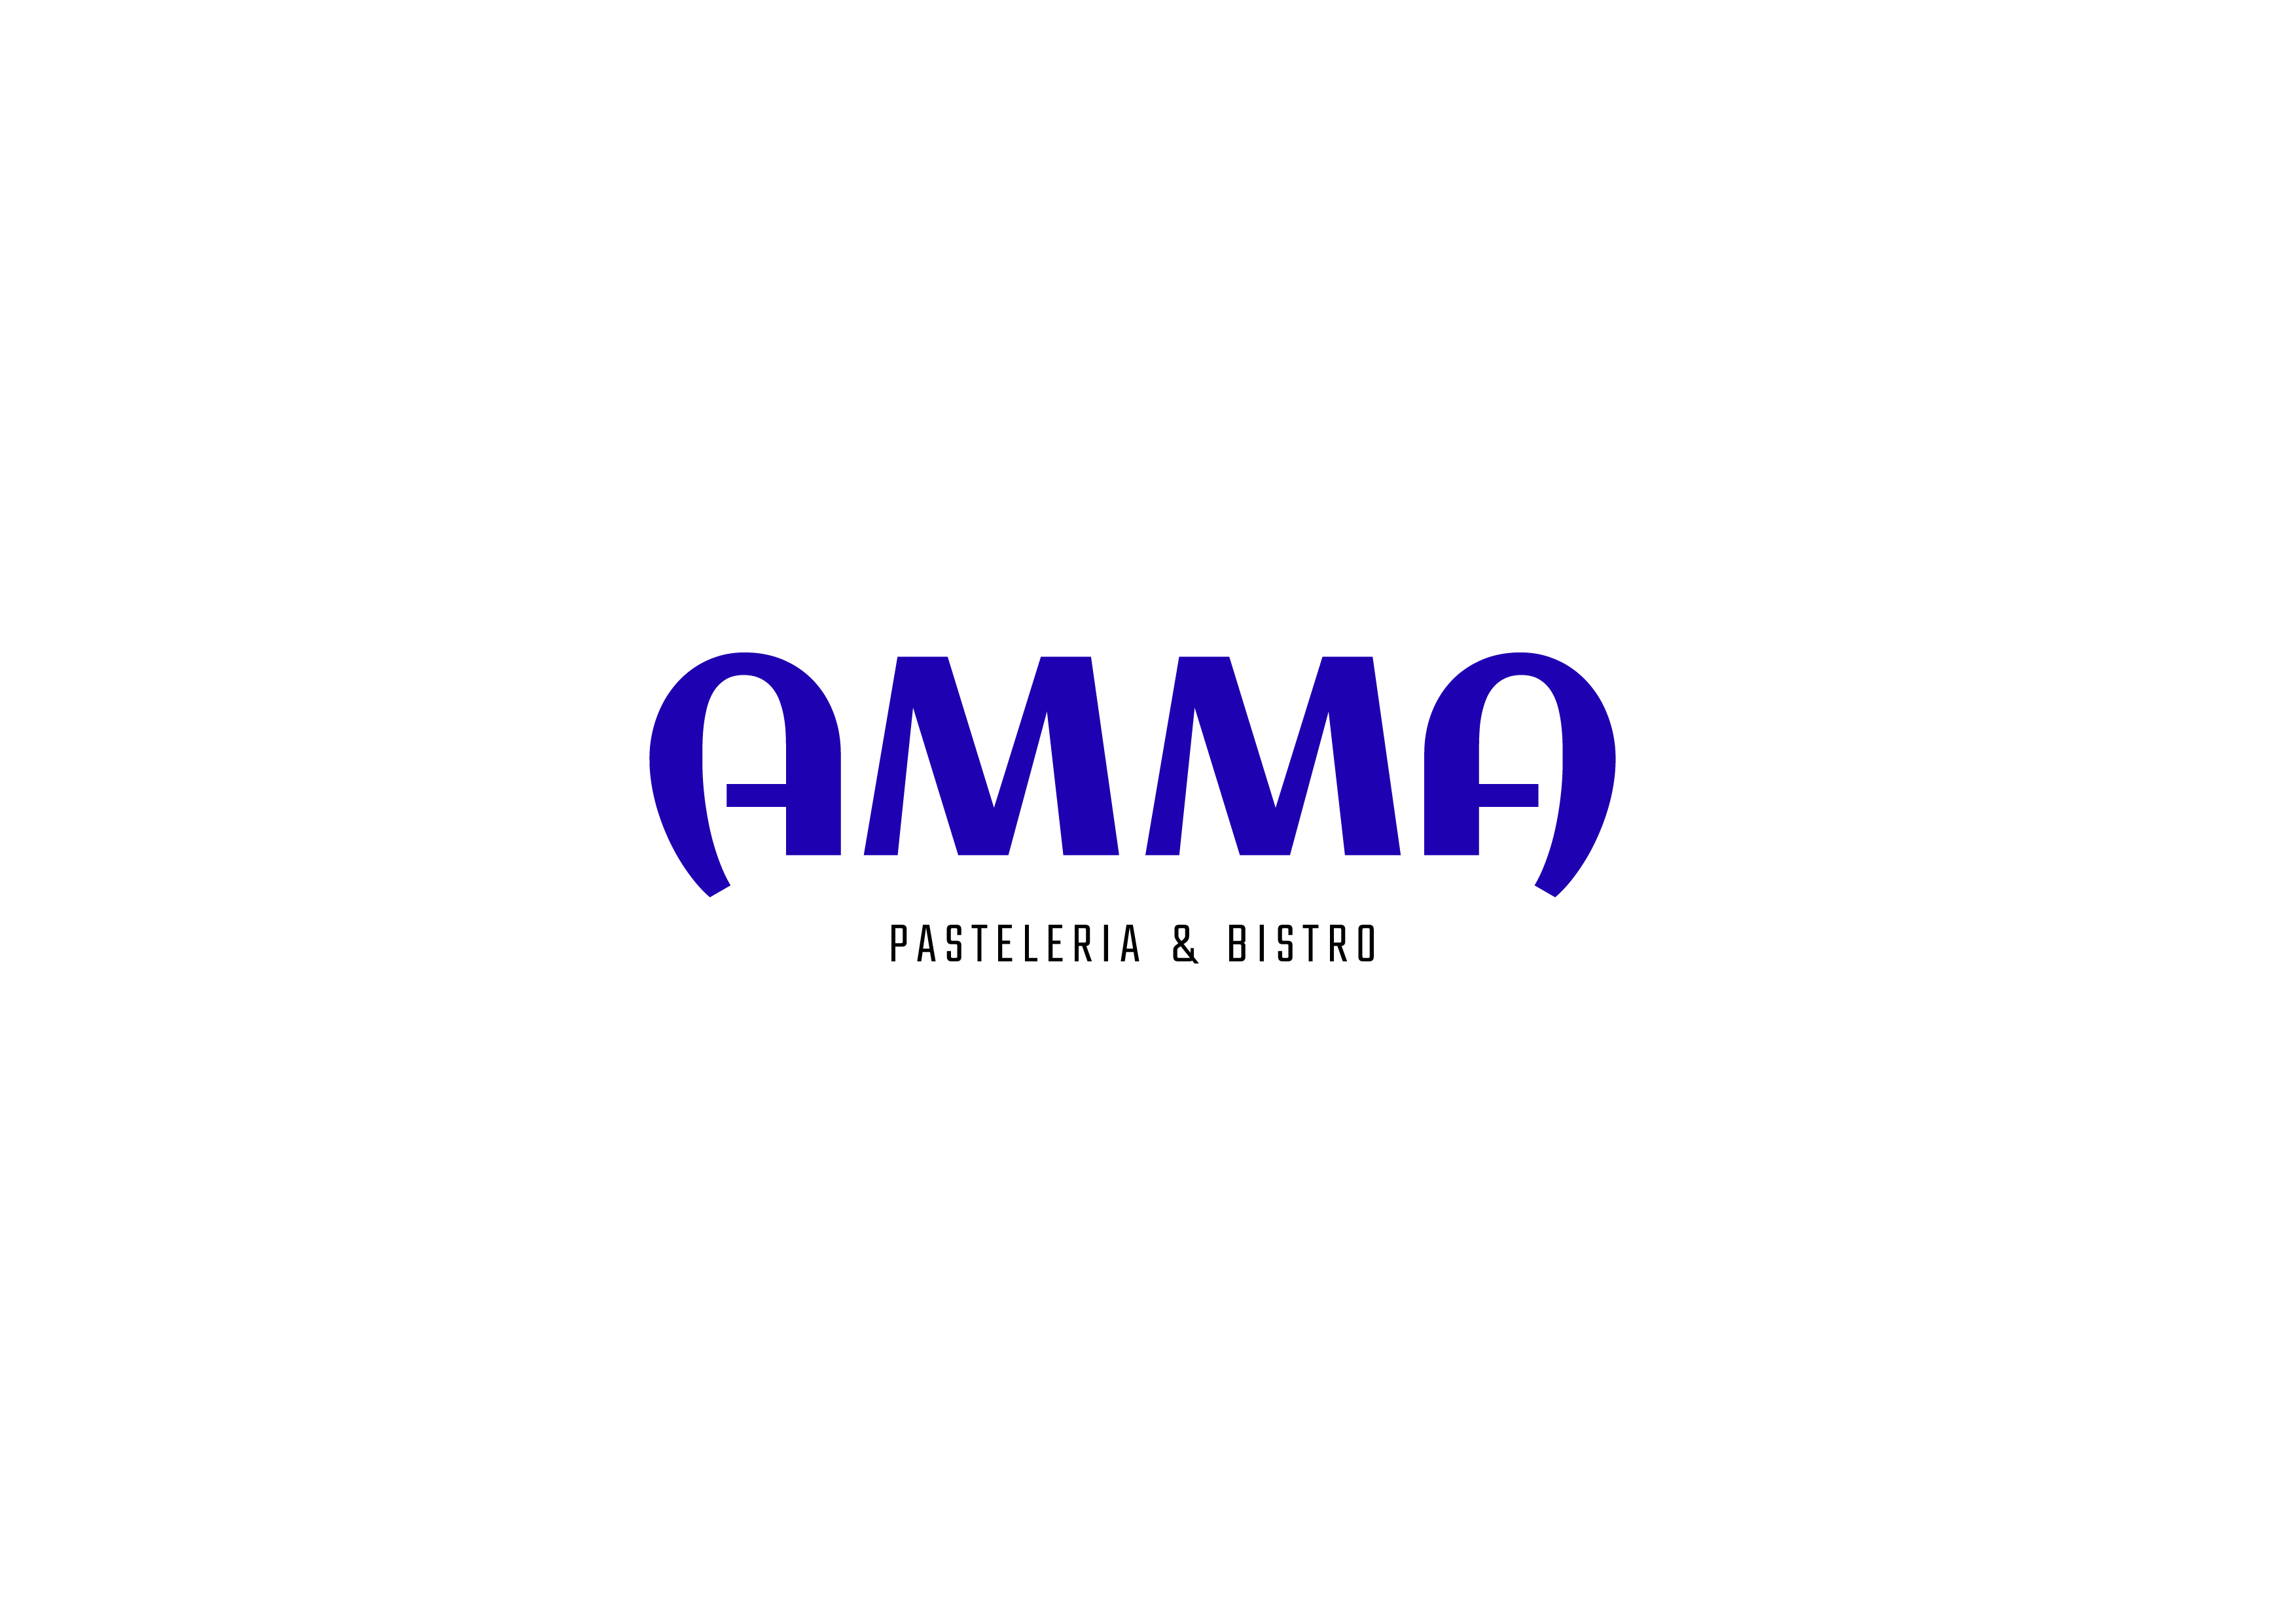 Visual Identity and Branding for Bakery and Bistro Amma